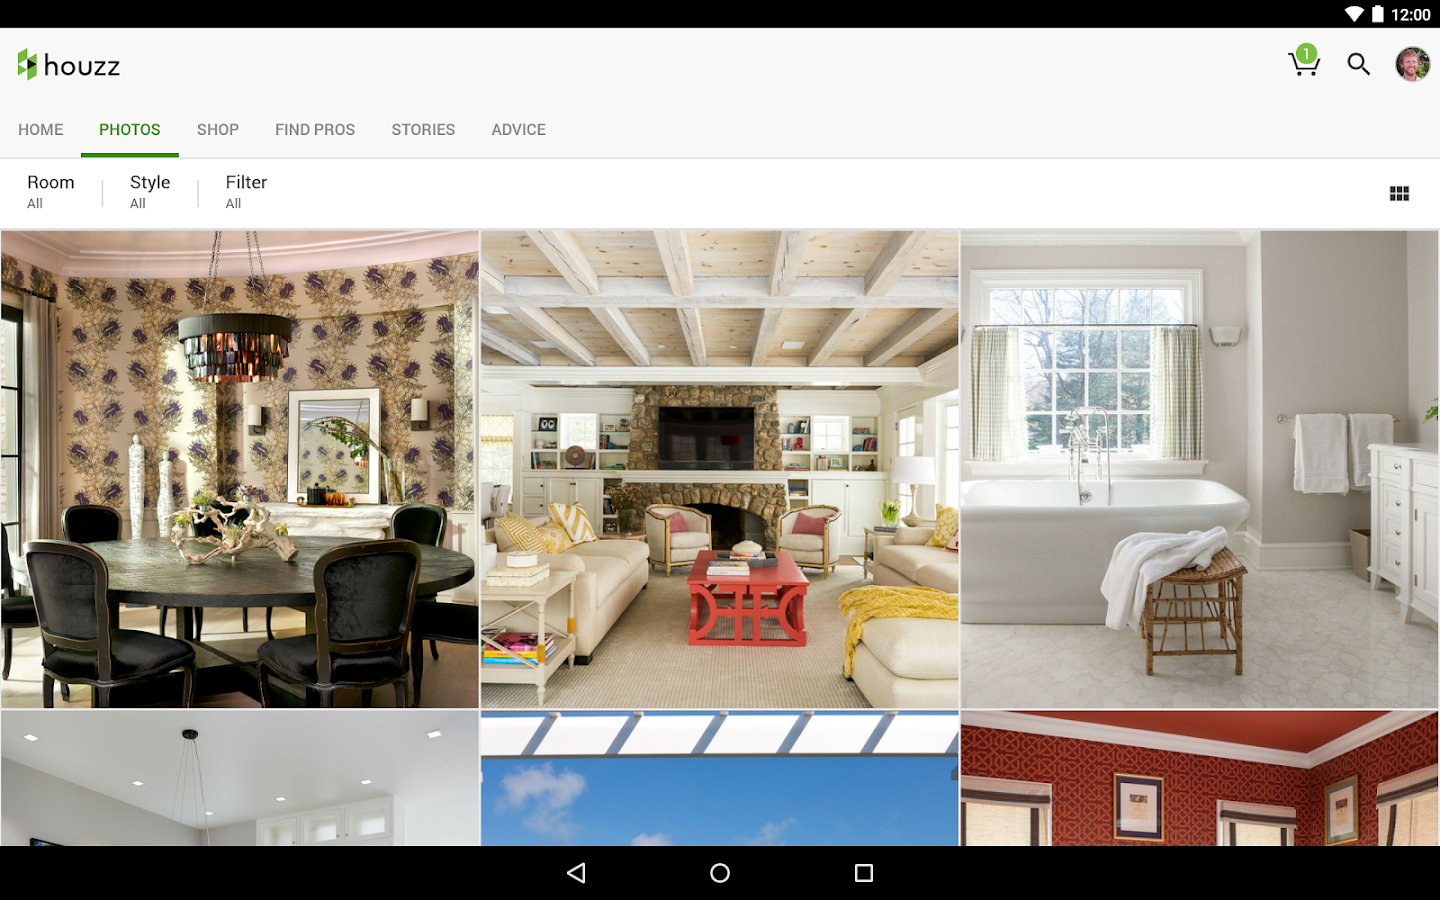 Houzz interior design ideas android apps on google play - Cuisiniere grise ...